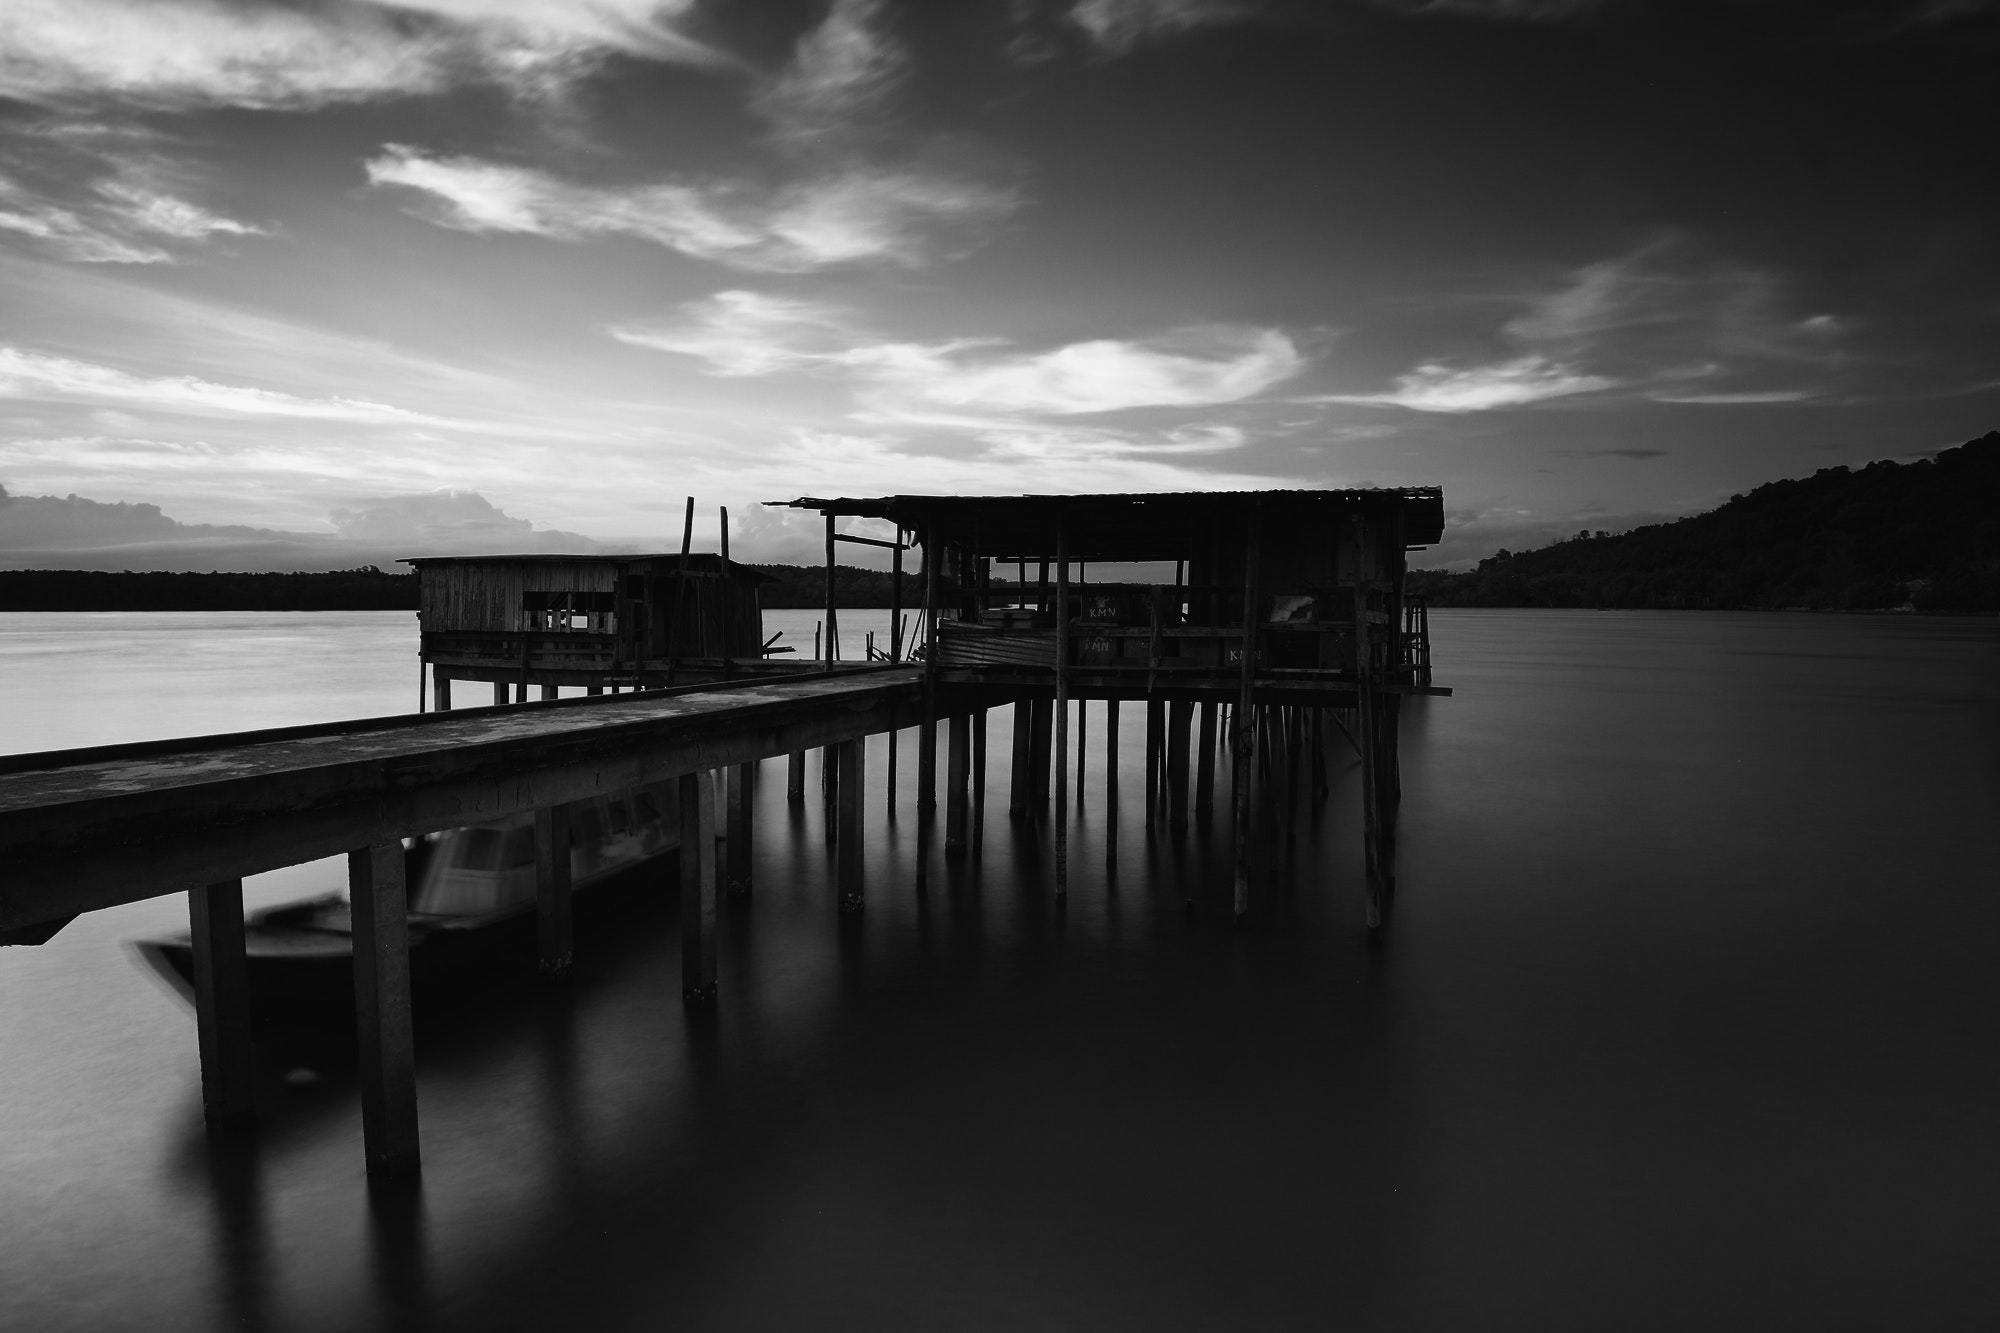 Greyscale Photo of Dock Near Mountains, Beach, Ocean, Travel, Time-lapse, HQ Photo